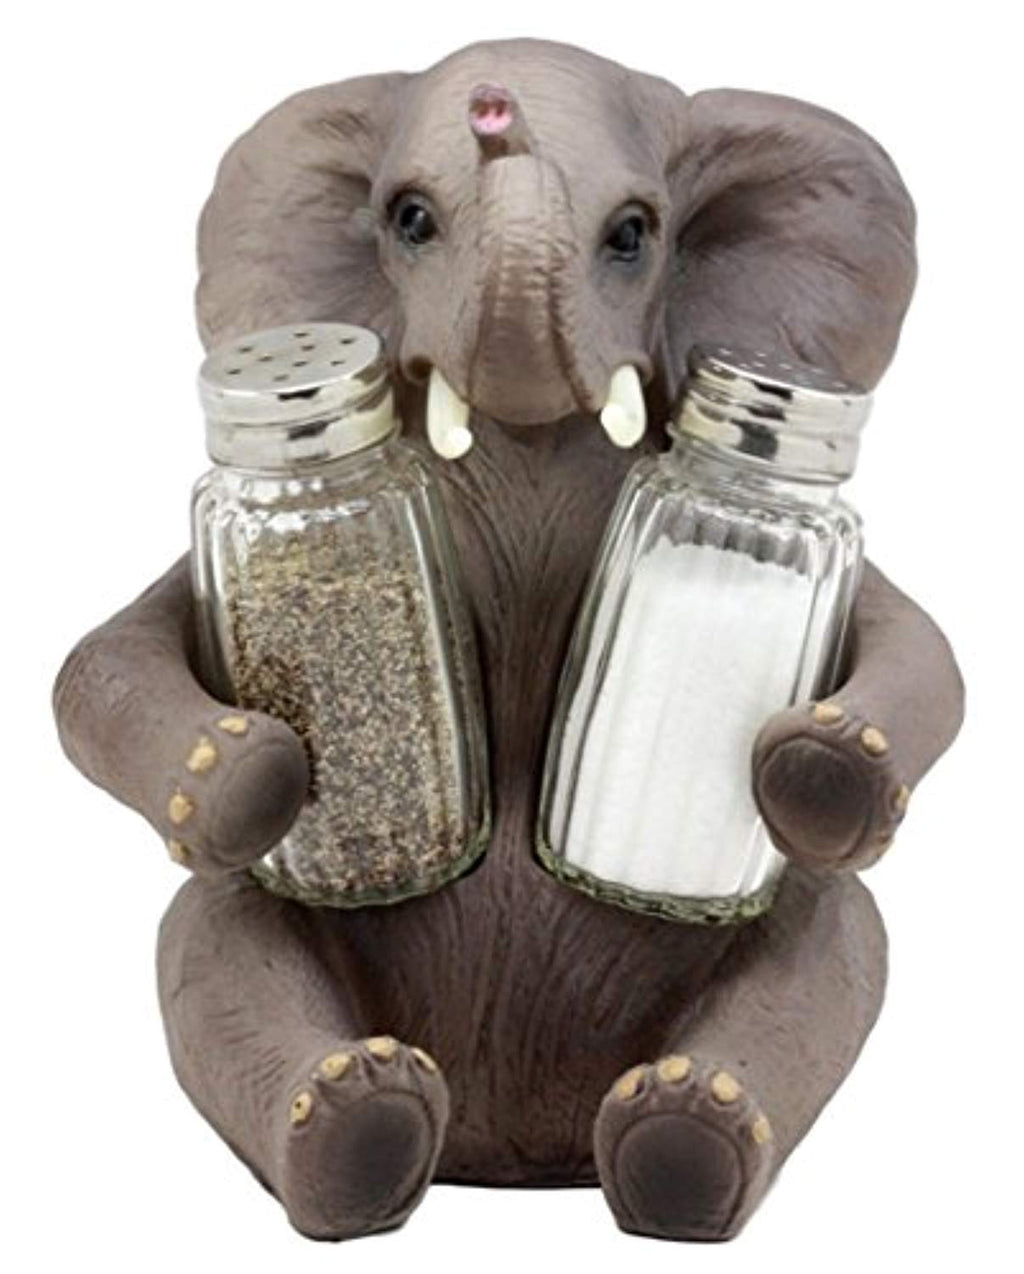 "Ebros Gift African Bush Elephant Glass Salt & Pepper Shakers Holder Figurine Decor 7""H"